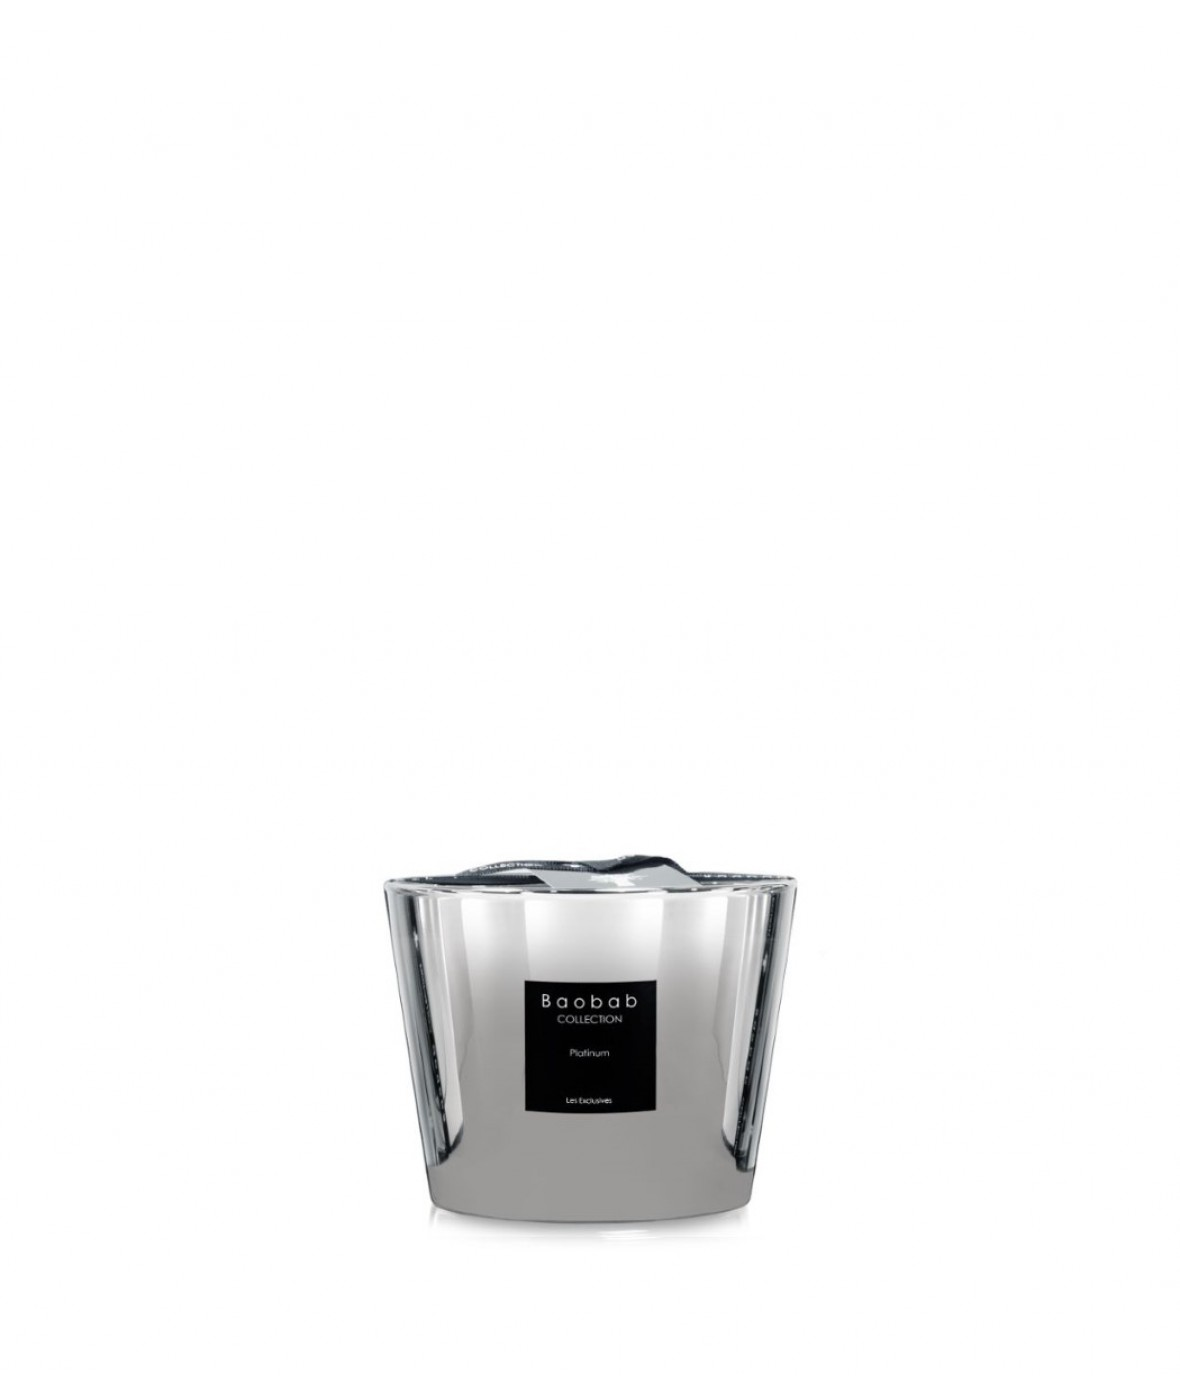 Baobap Scented Candle Platinum (Small)